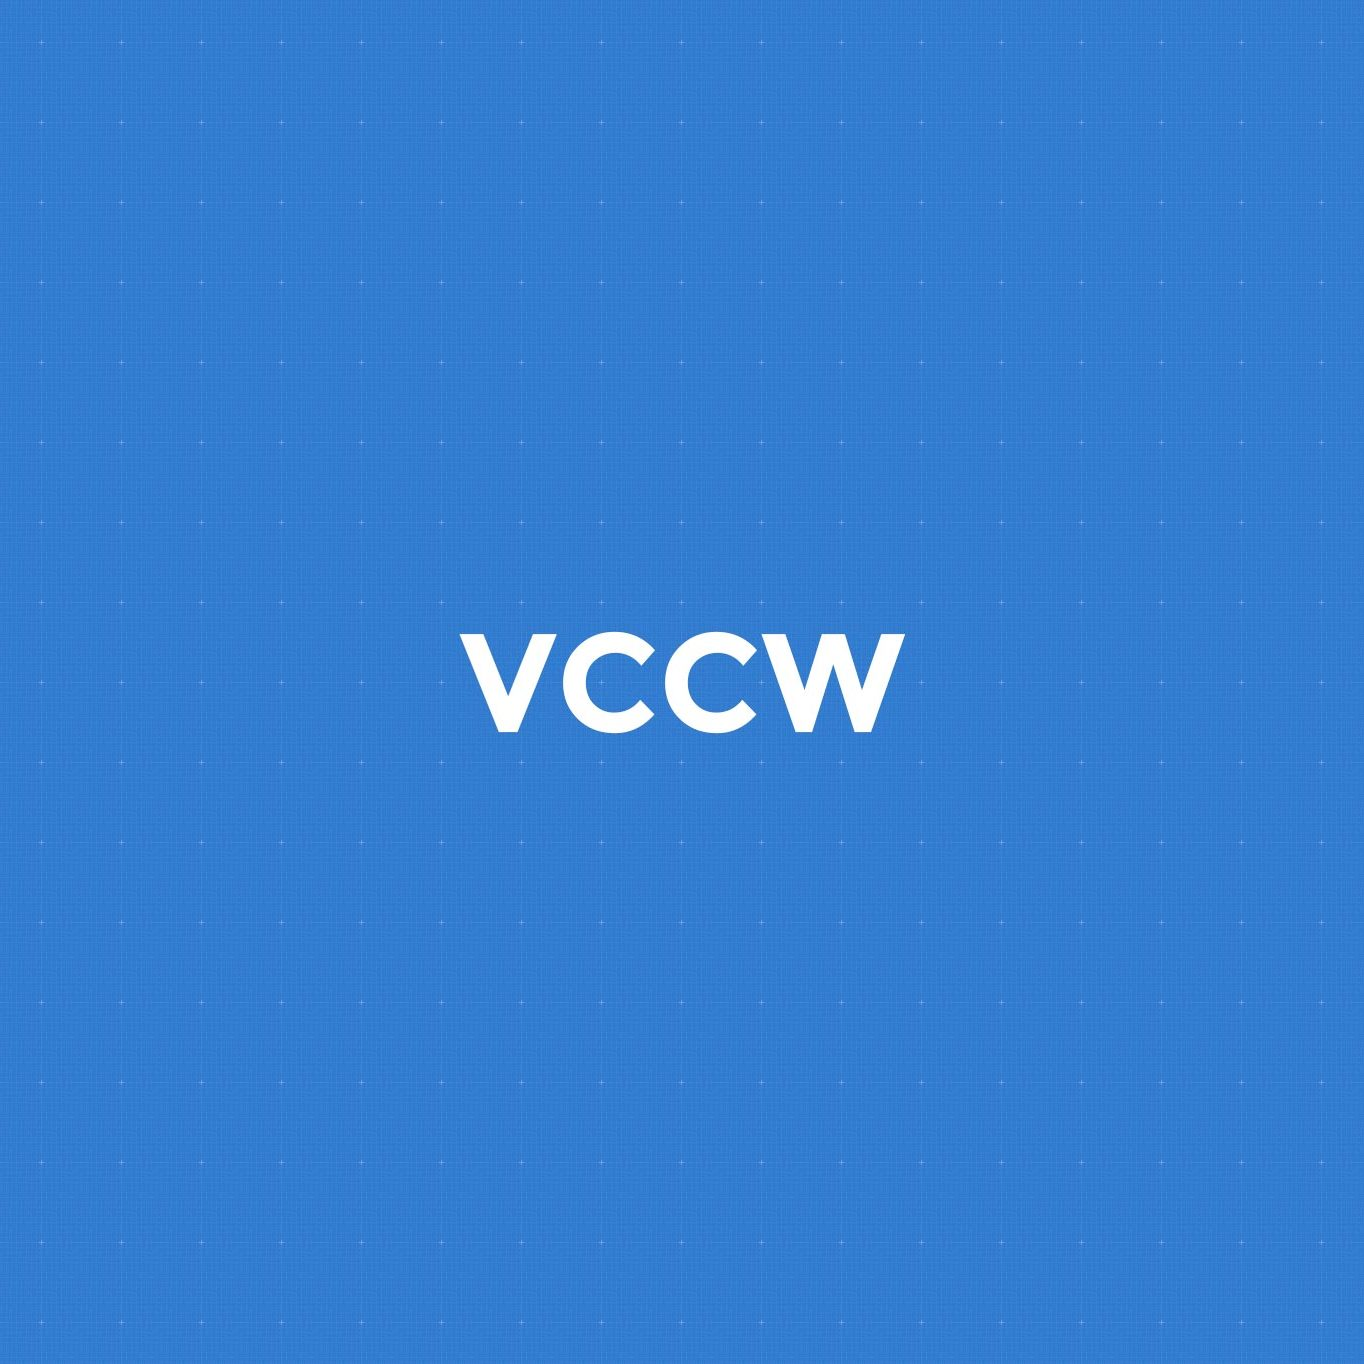 catch-vccw3-local-wordmove-deploy